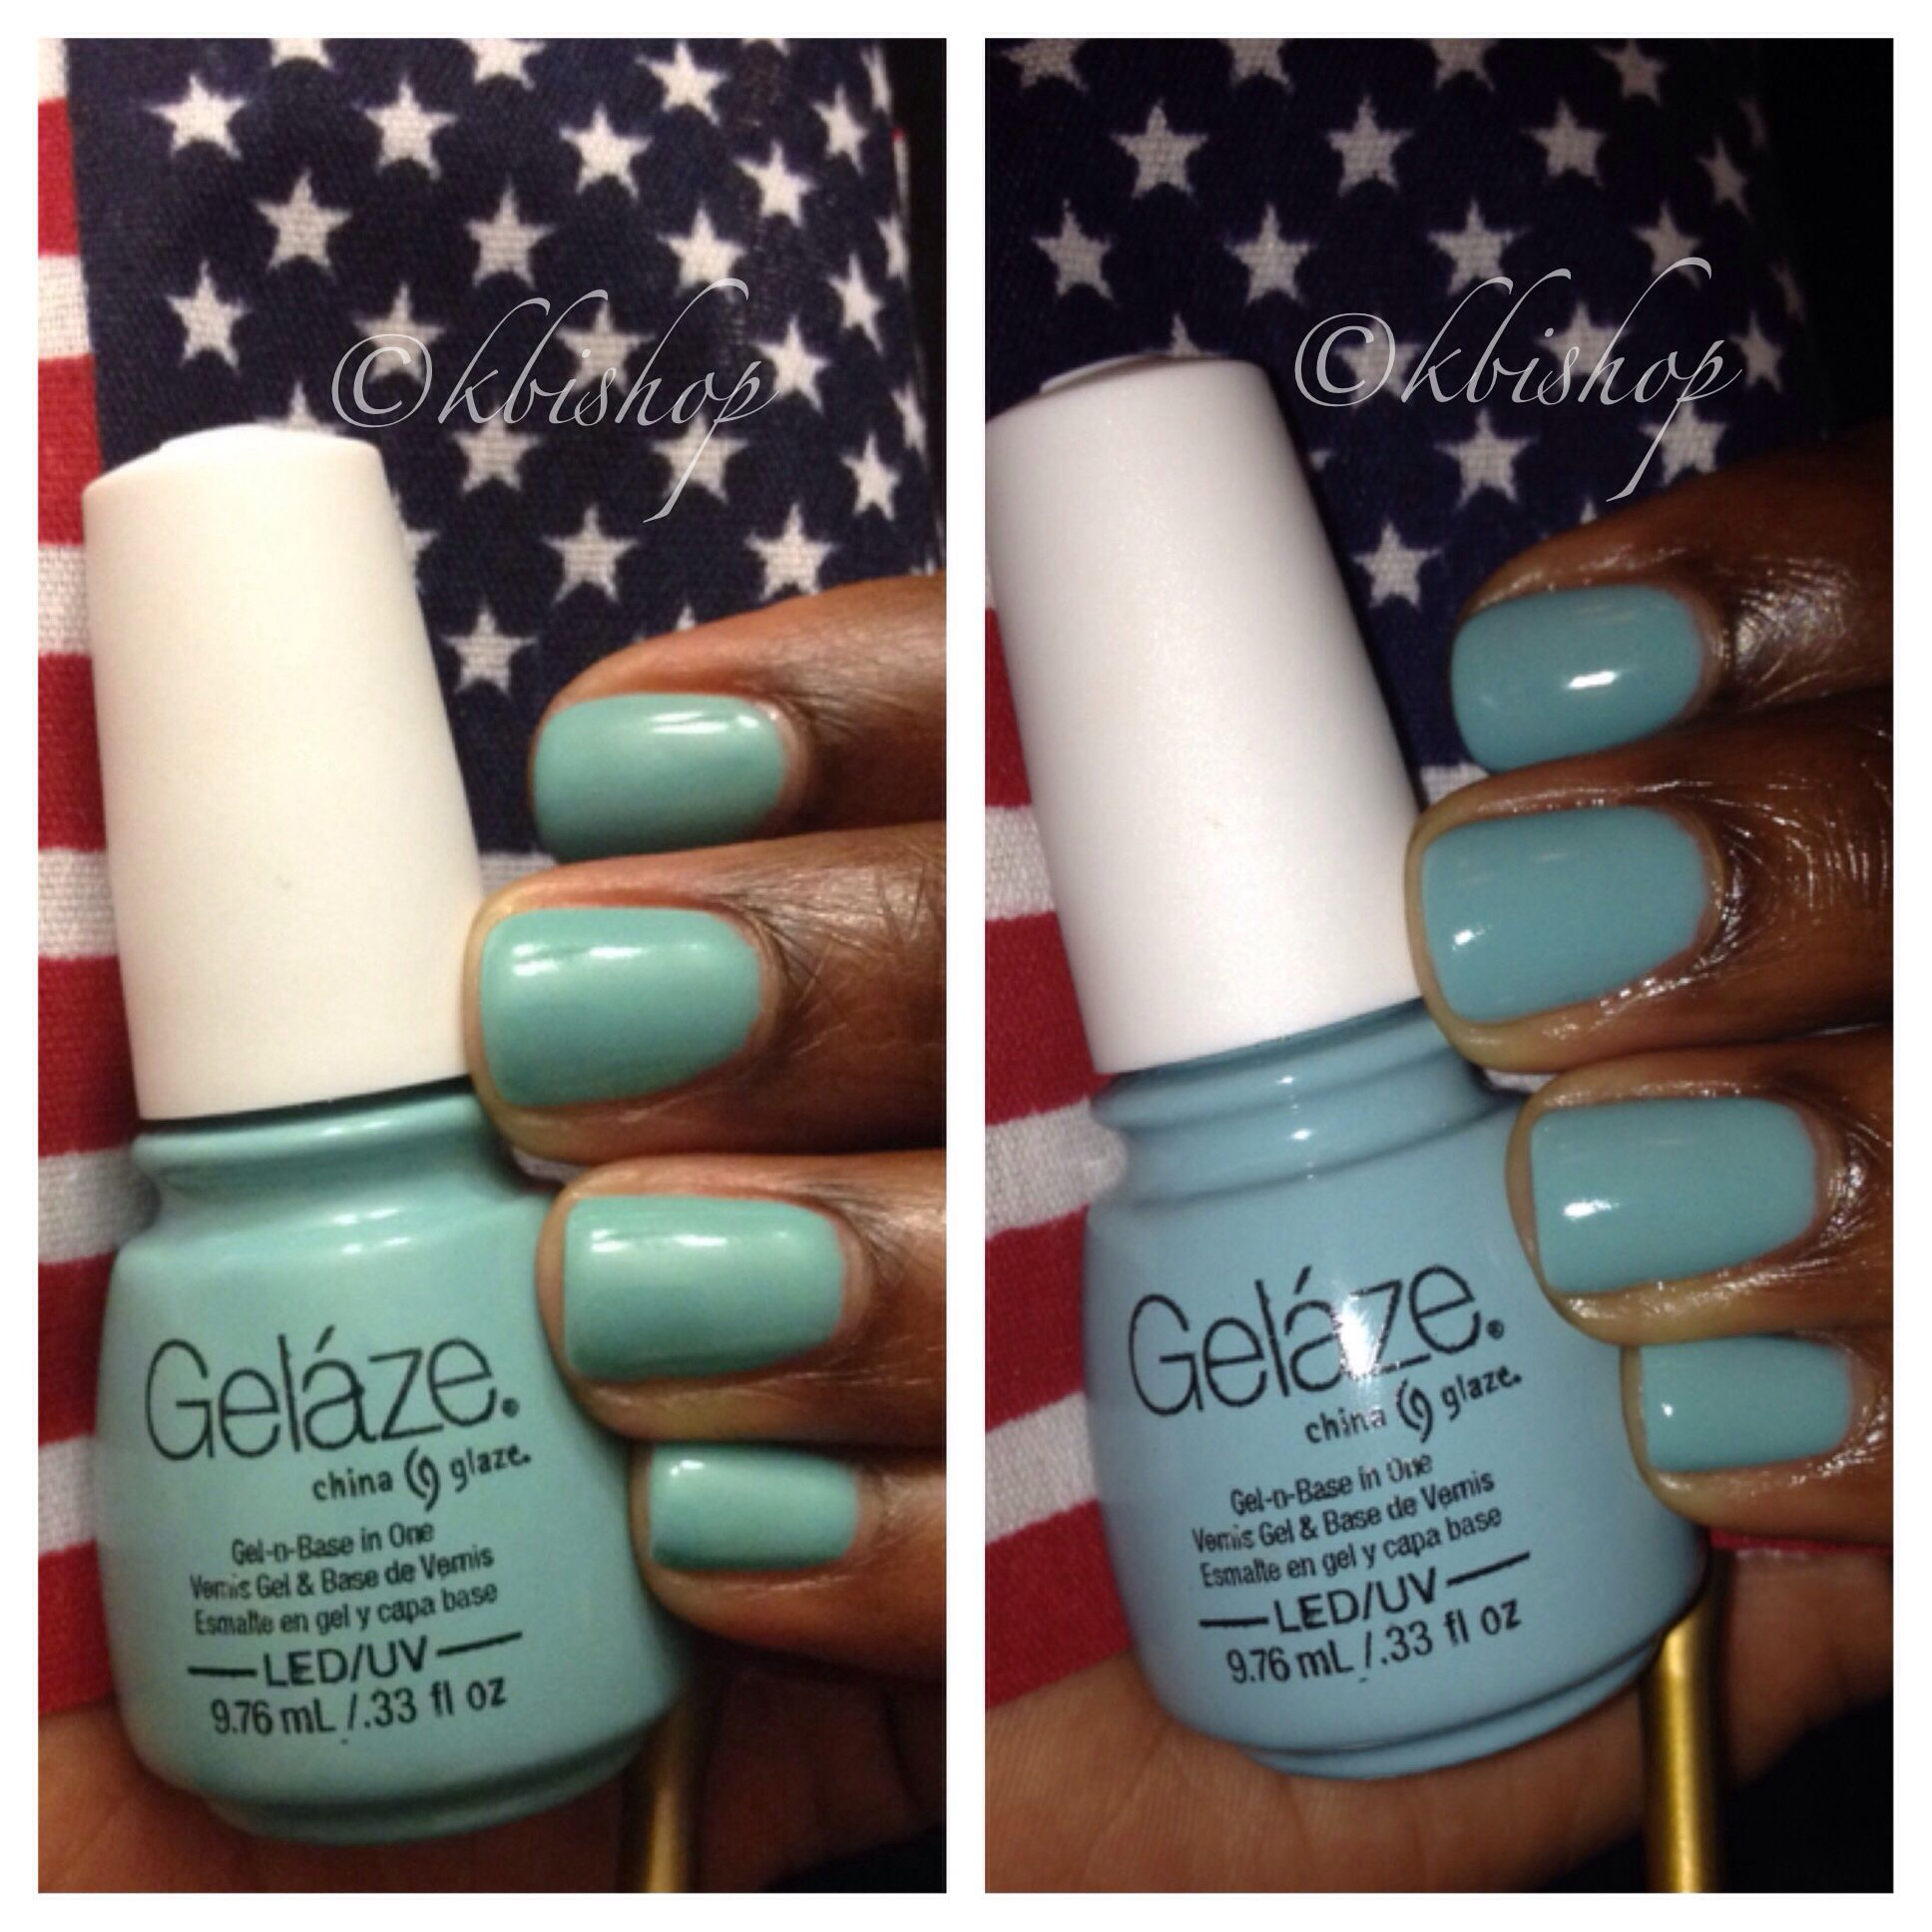 Gelaze gel nail polish by china glaze in the color \